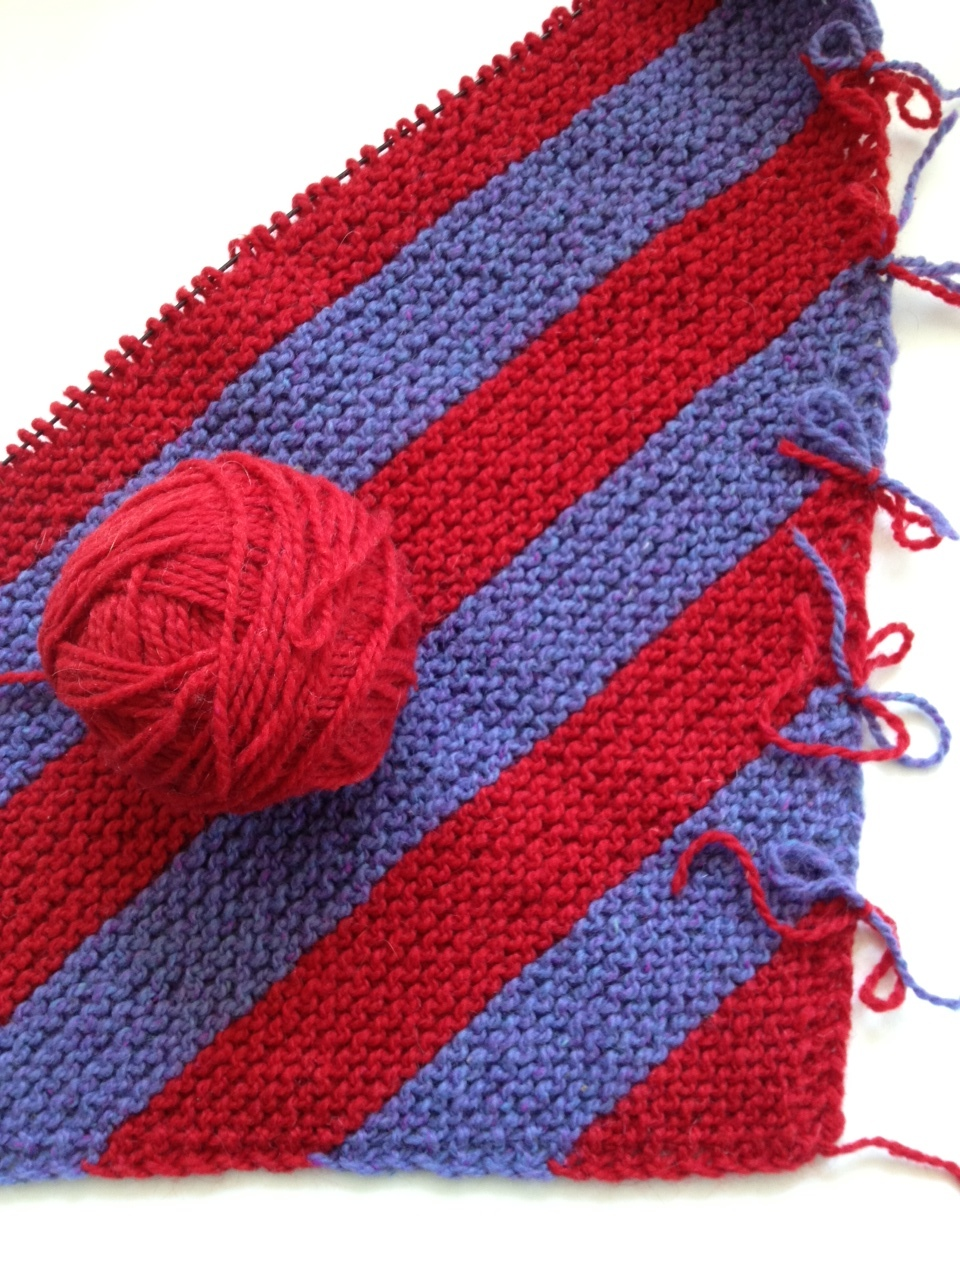 Here's my Diagonal knitting Work in Progress